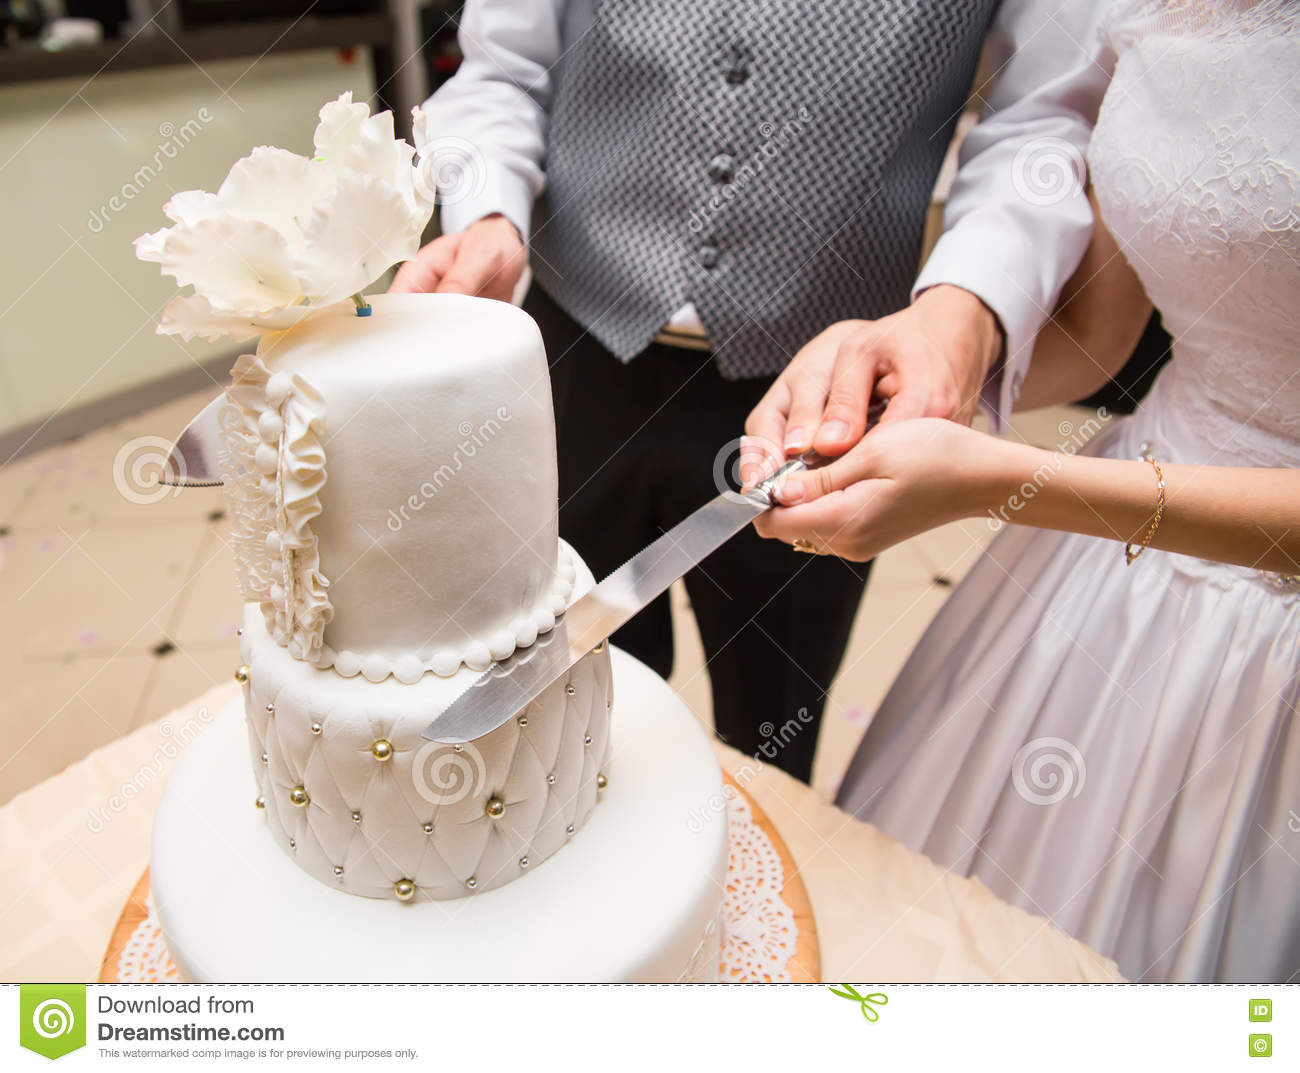 Groom Holds Bride Hand To Cut A Cake Stock Image - Image ...